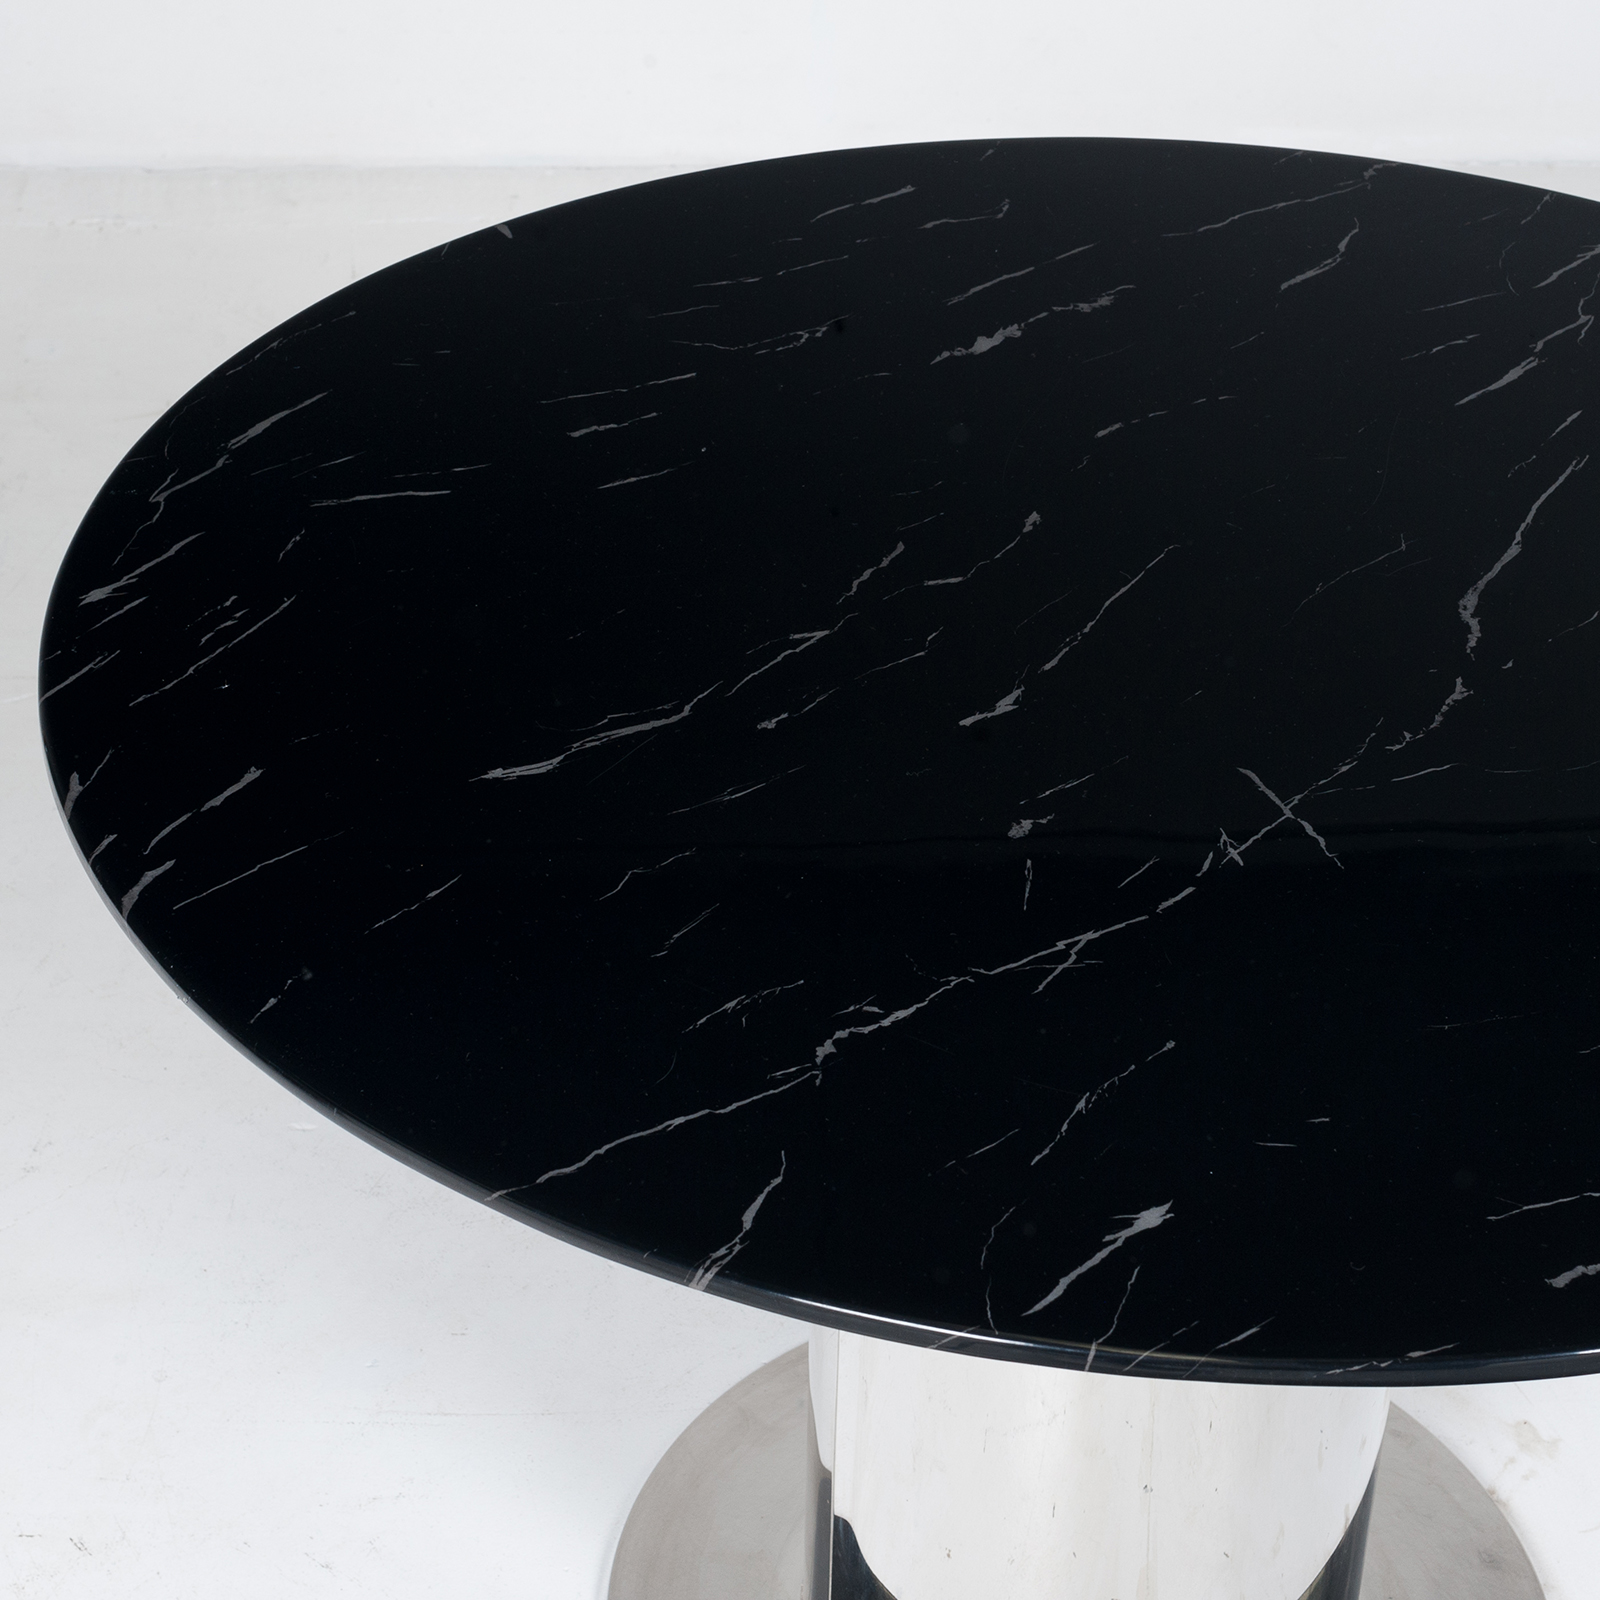 Round Dining Table With Marble Top And Chrome Base In The Style Of Ettore Sottsass, 1980s, The Netherlands 3